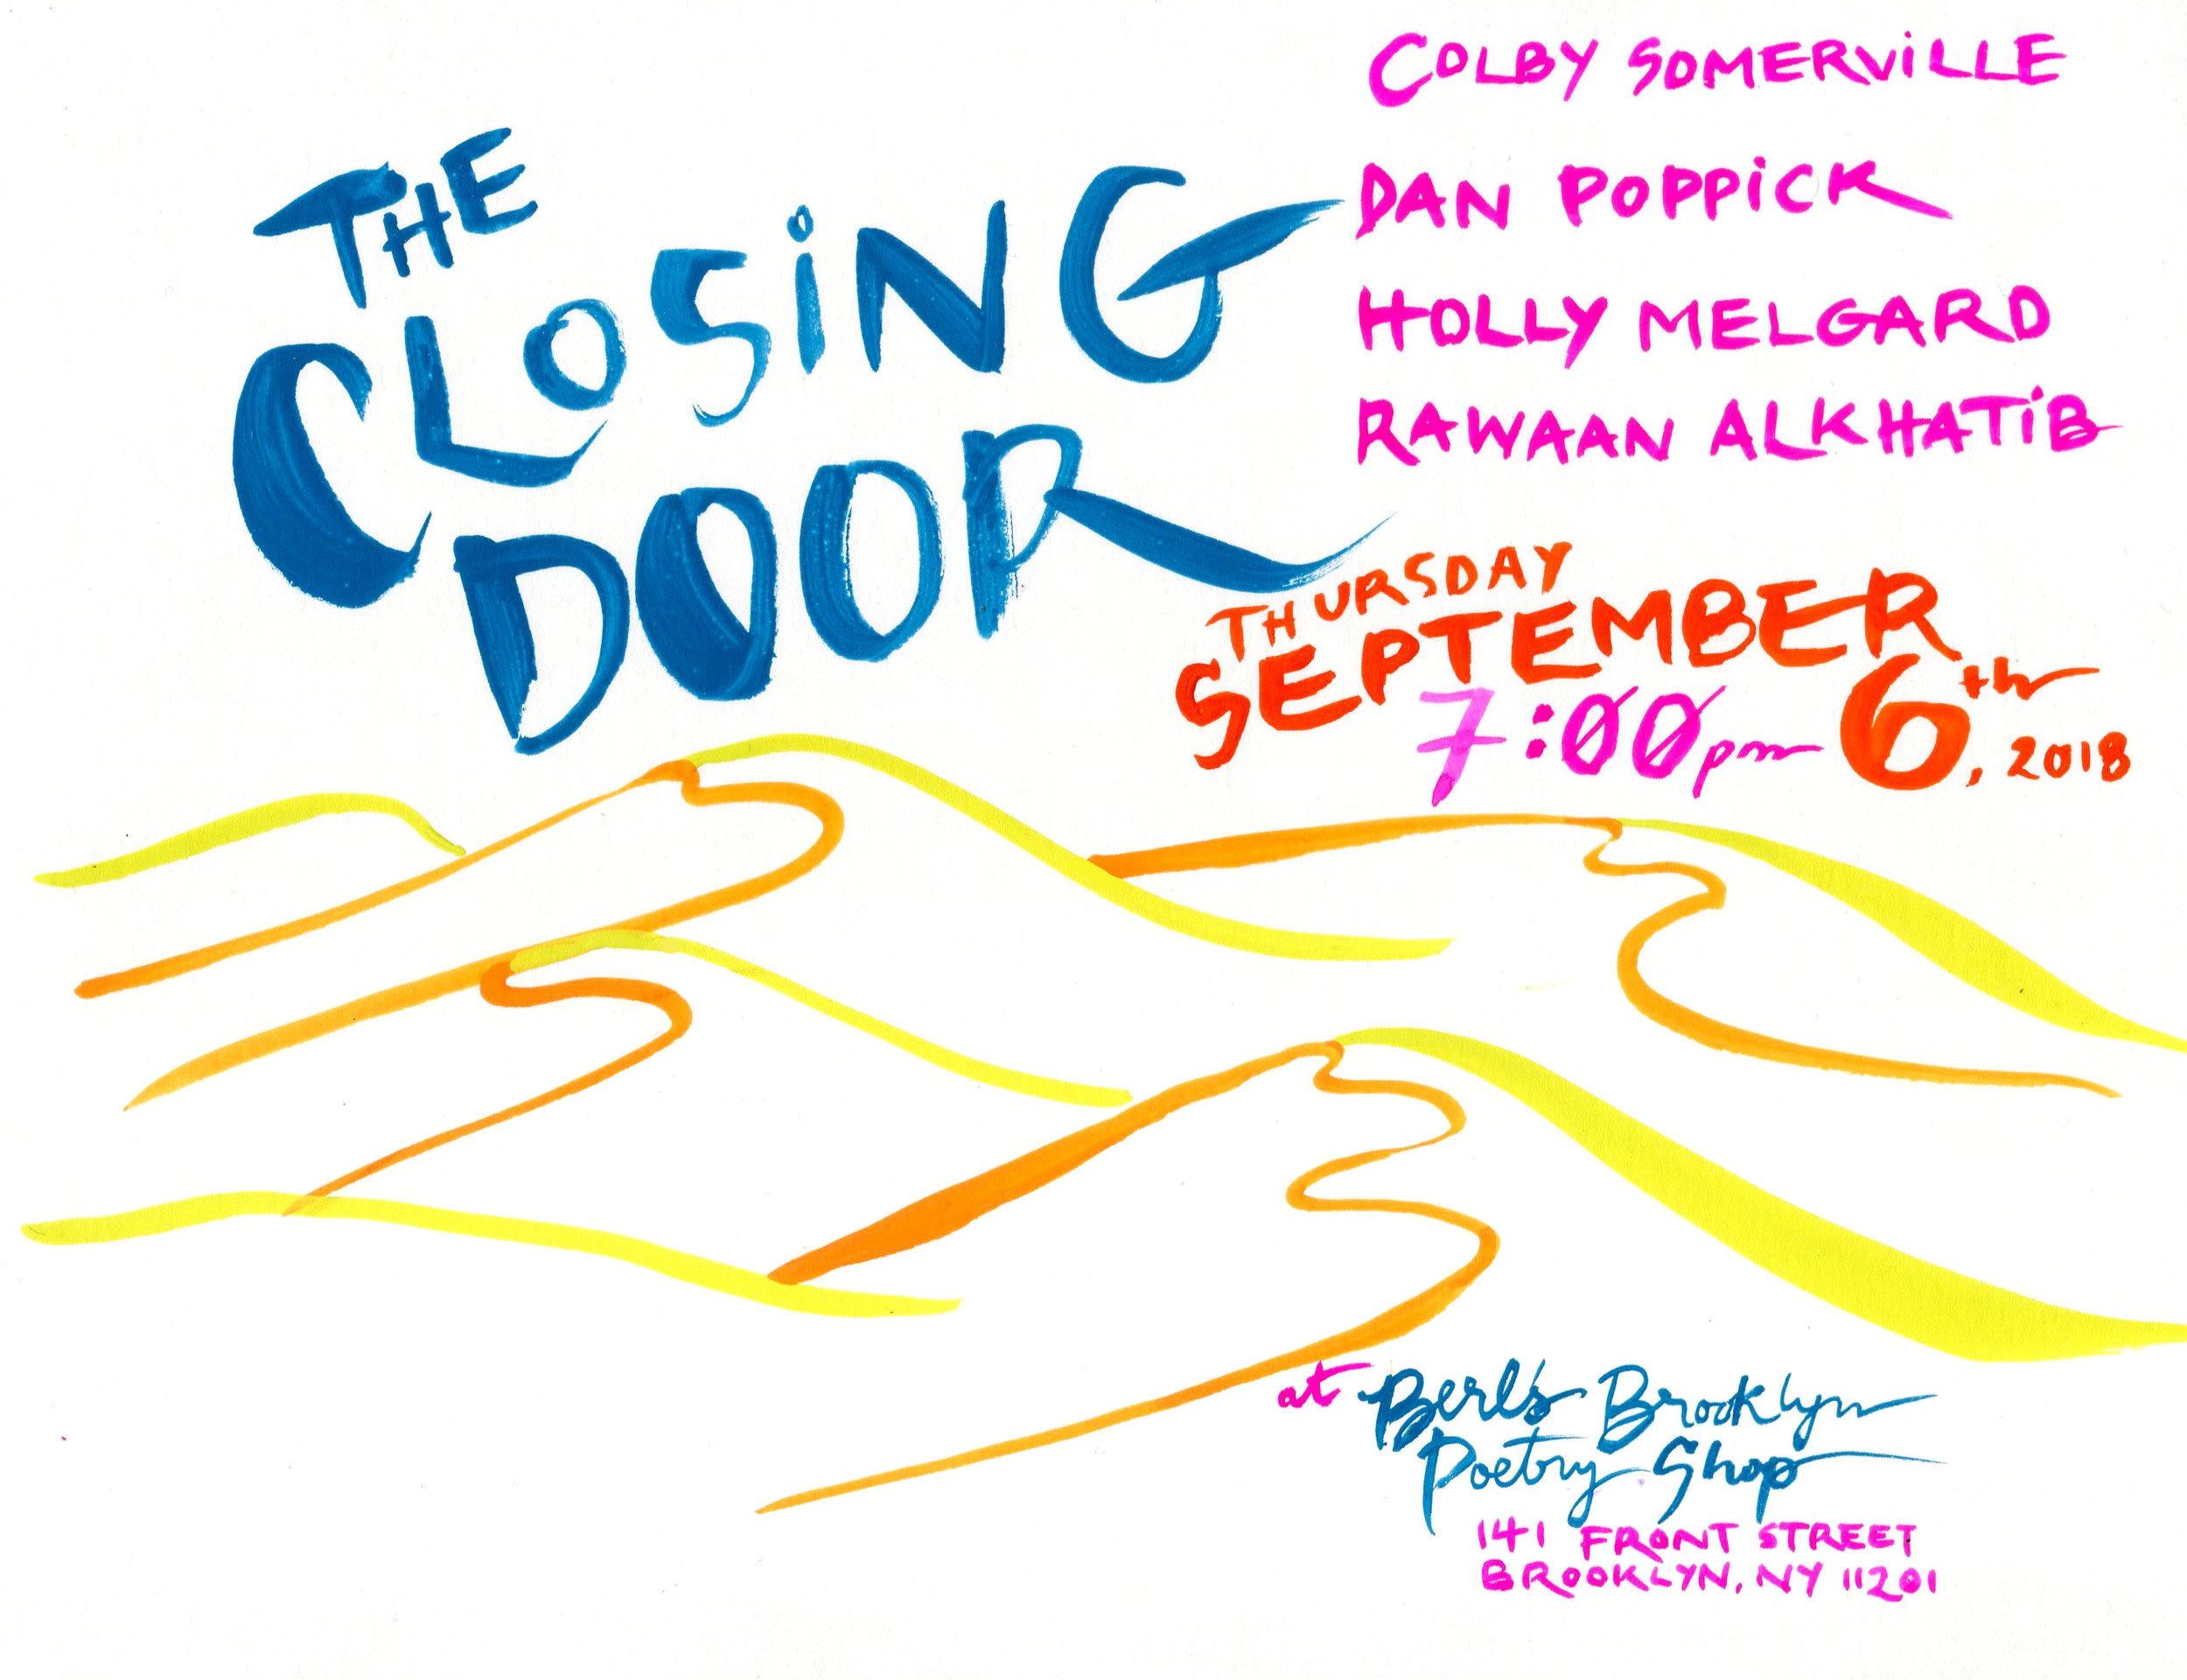 The-Closing-Door-poster (1).jpg